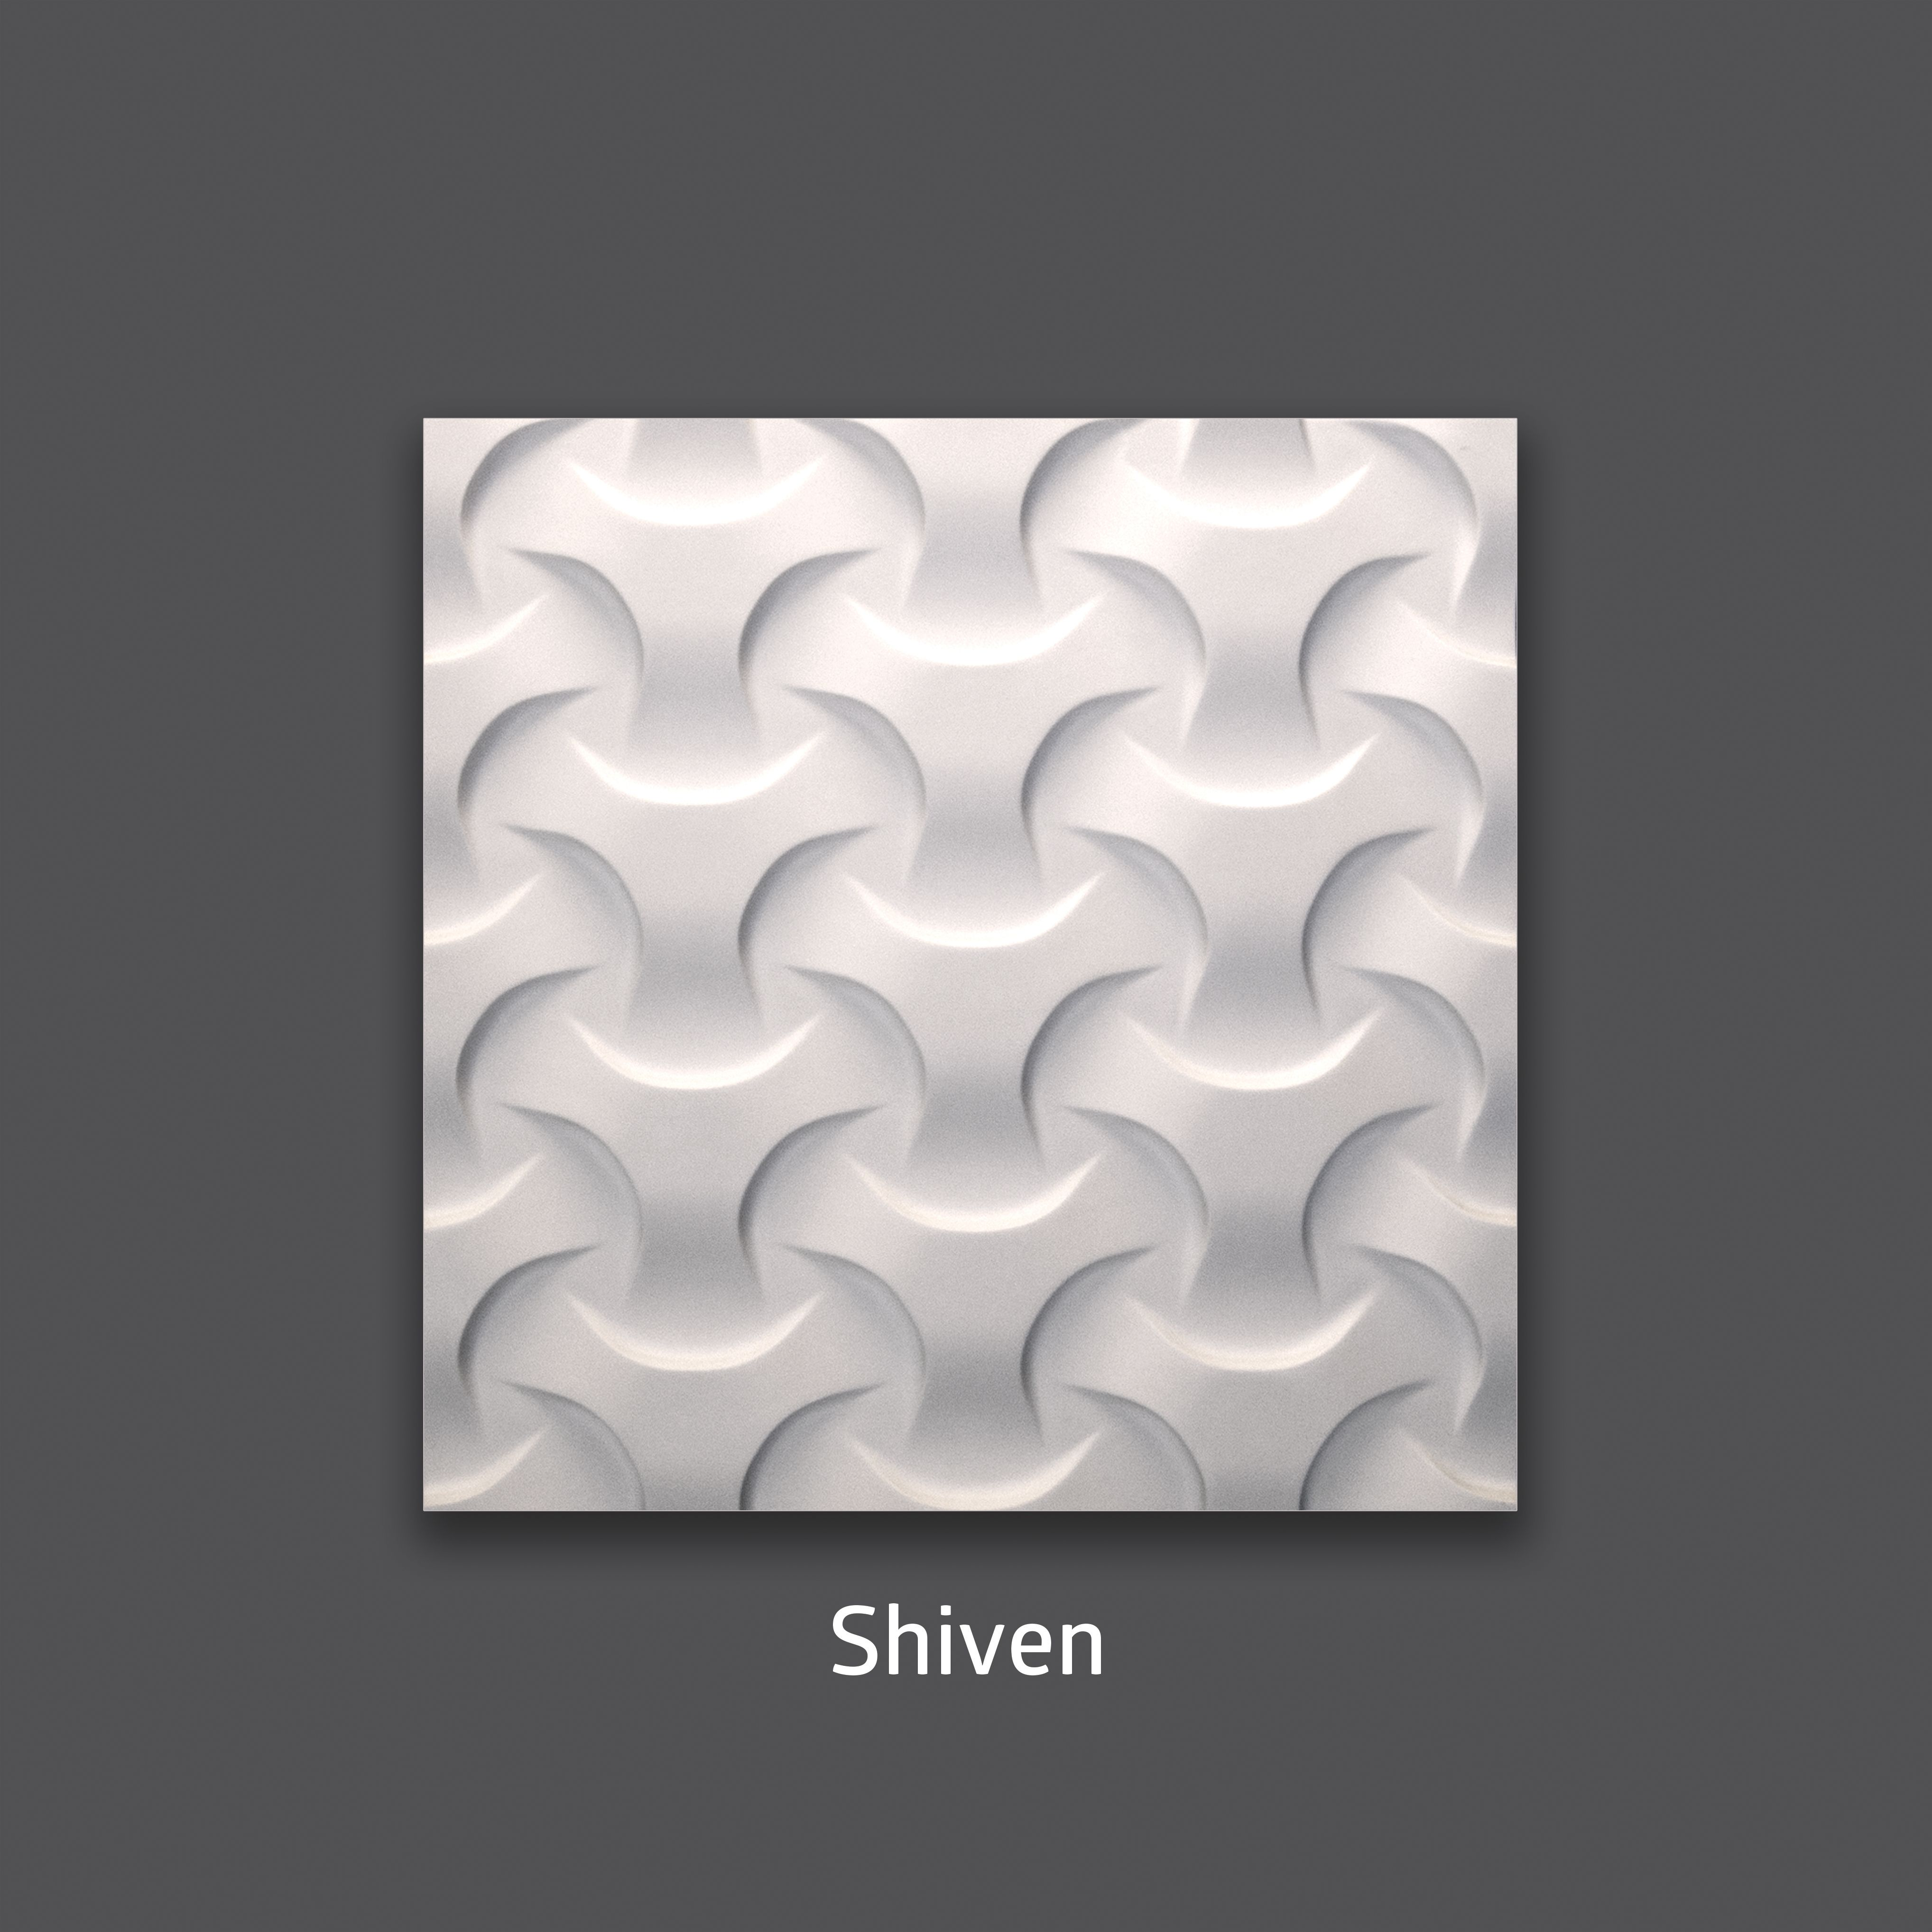 Shiven 3D Gypsum Decorative Wall Tile. Available in 16x16 and 32x32.  interior design ...